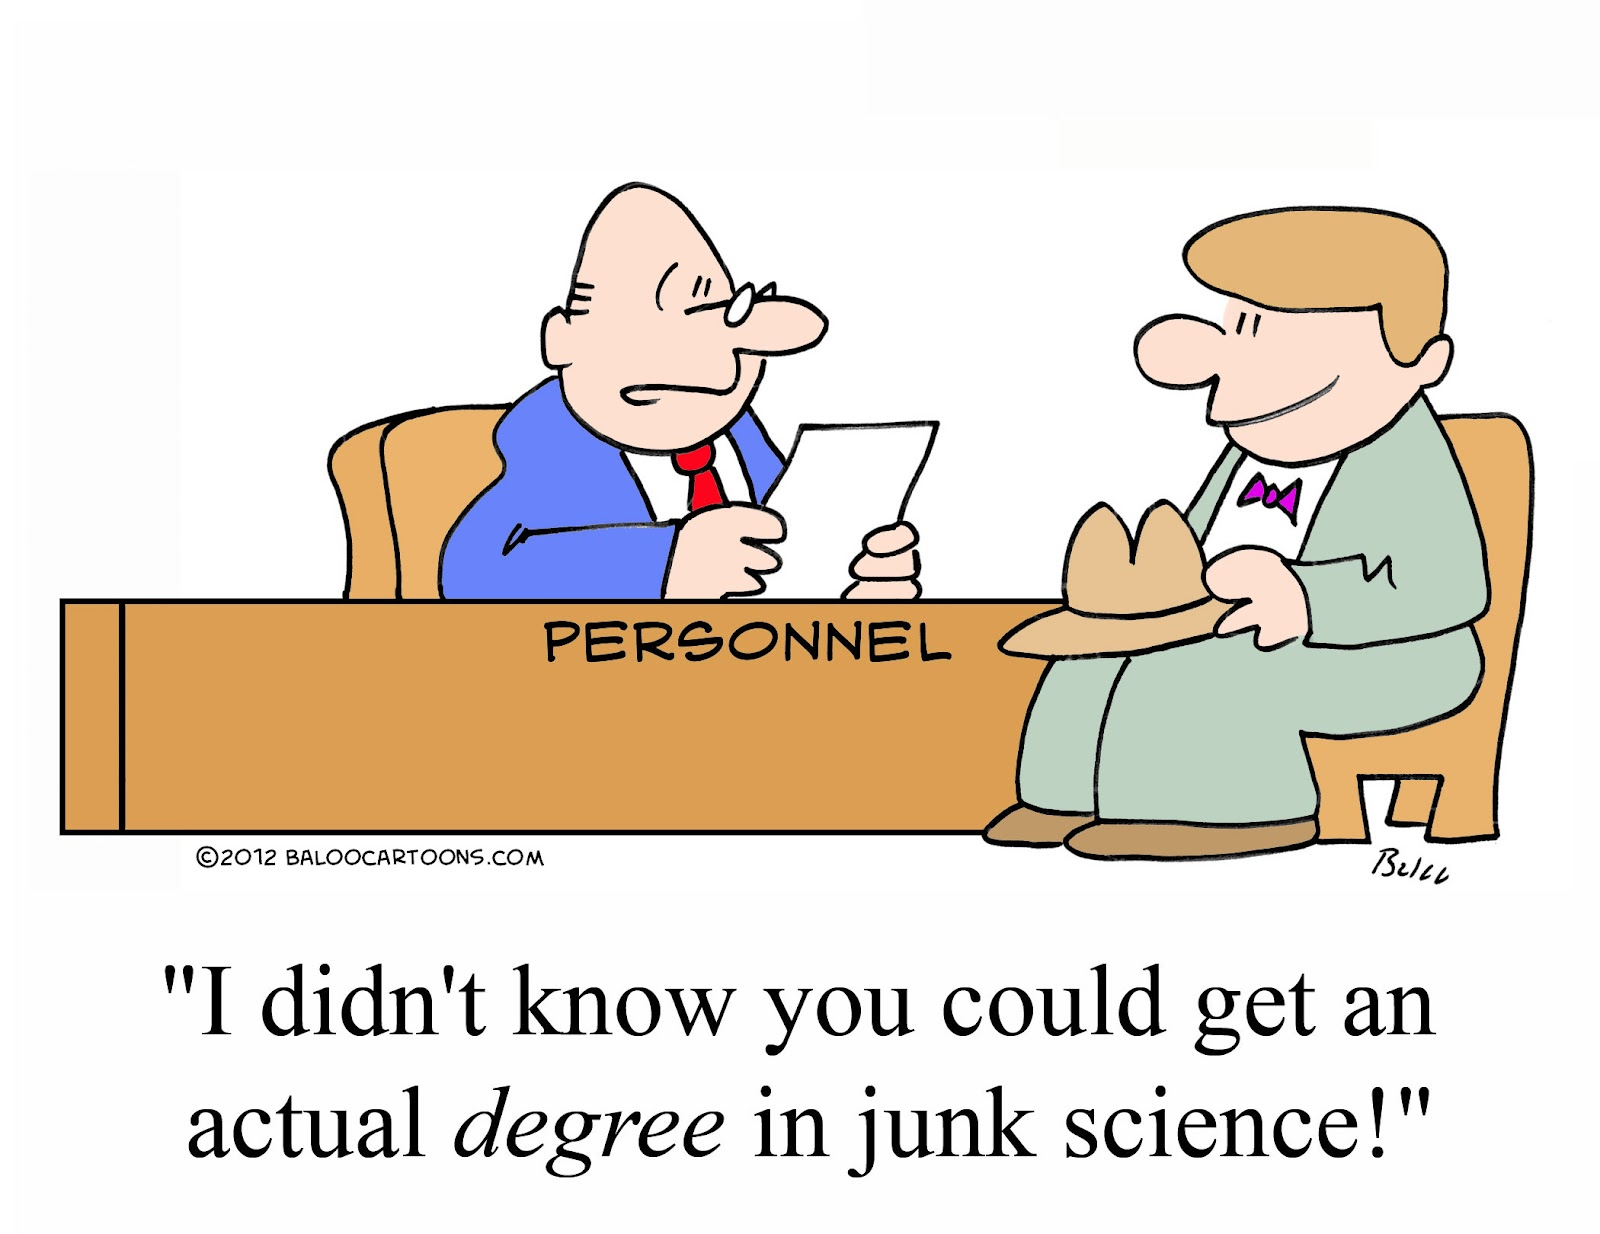 Daily science cartoon